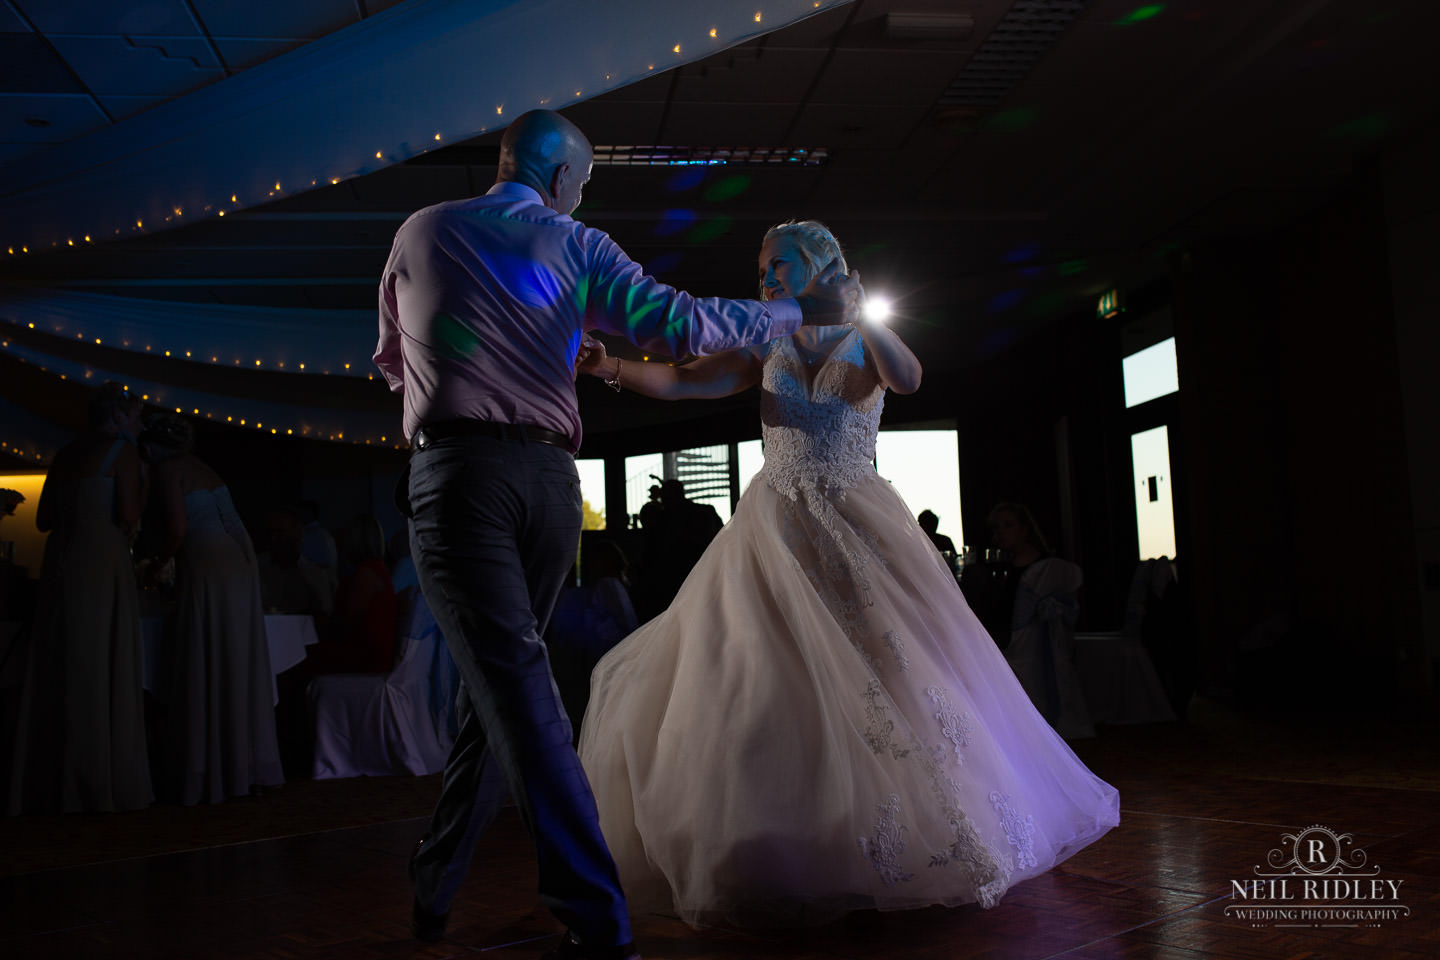 Bride and wedding guest do the tango on the dance floor at Macdonal Portal Hotel, Tarporley